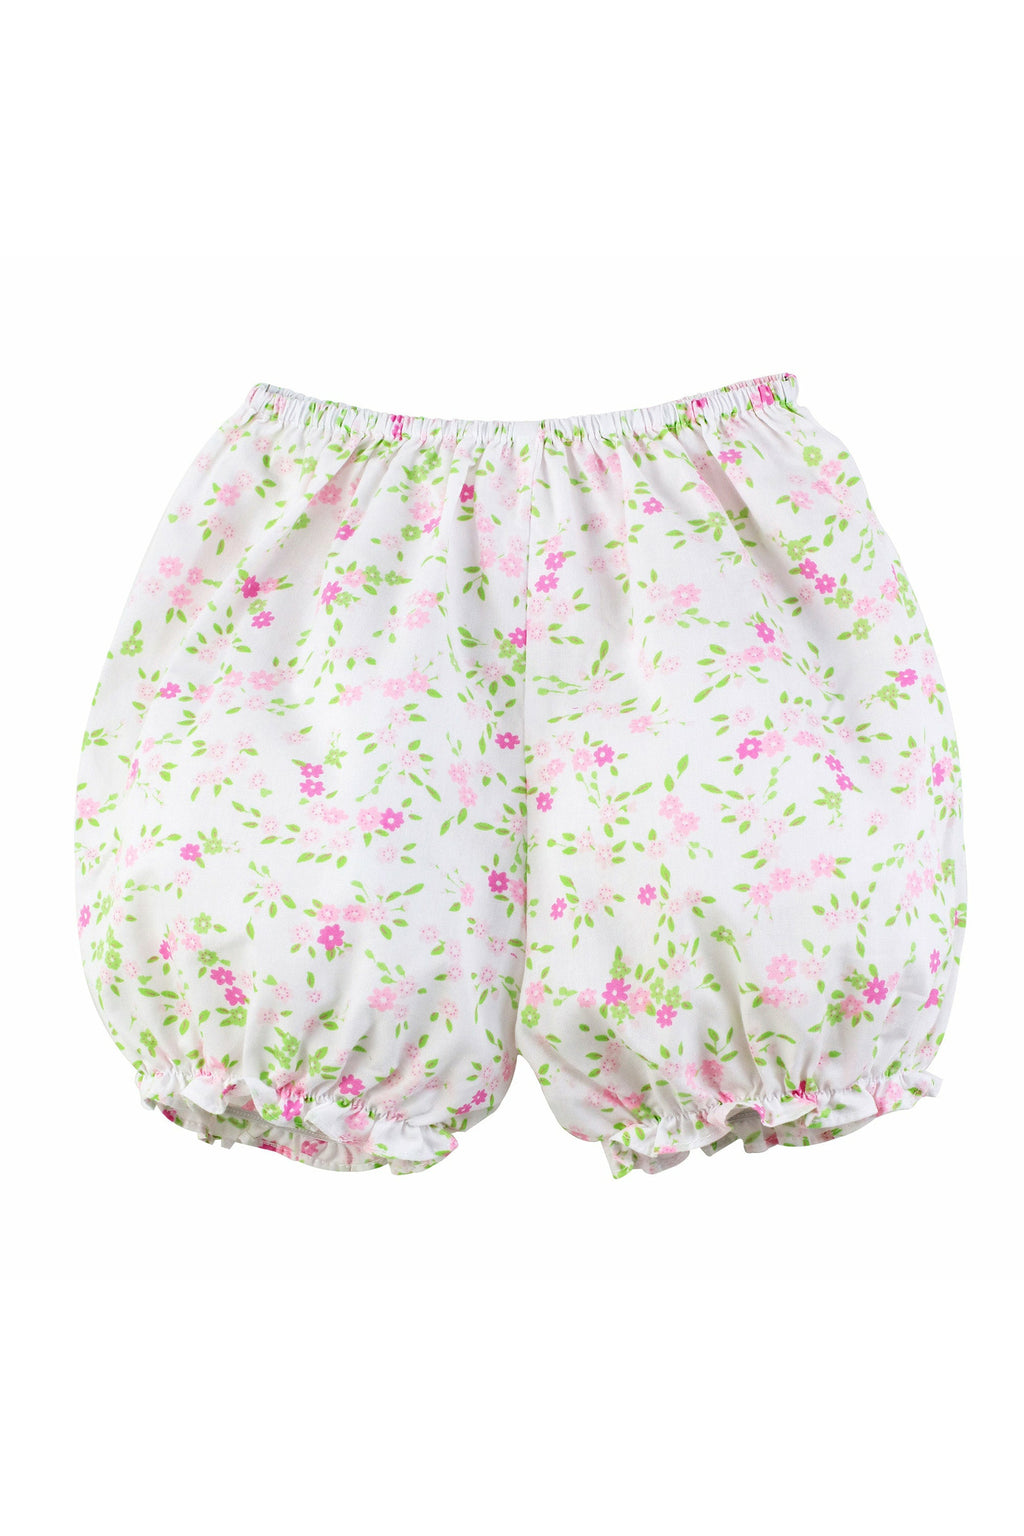 Baby Girl Hand Smocked Floral Bishop Dress [product_tags] - Carriage Boutique